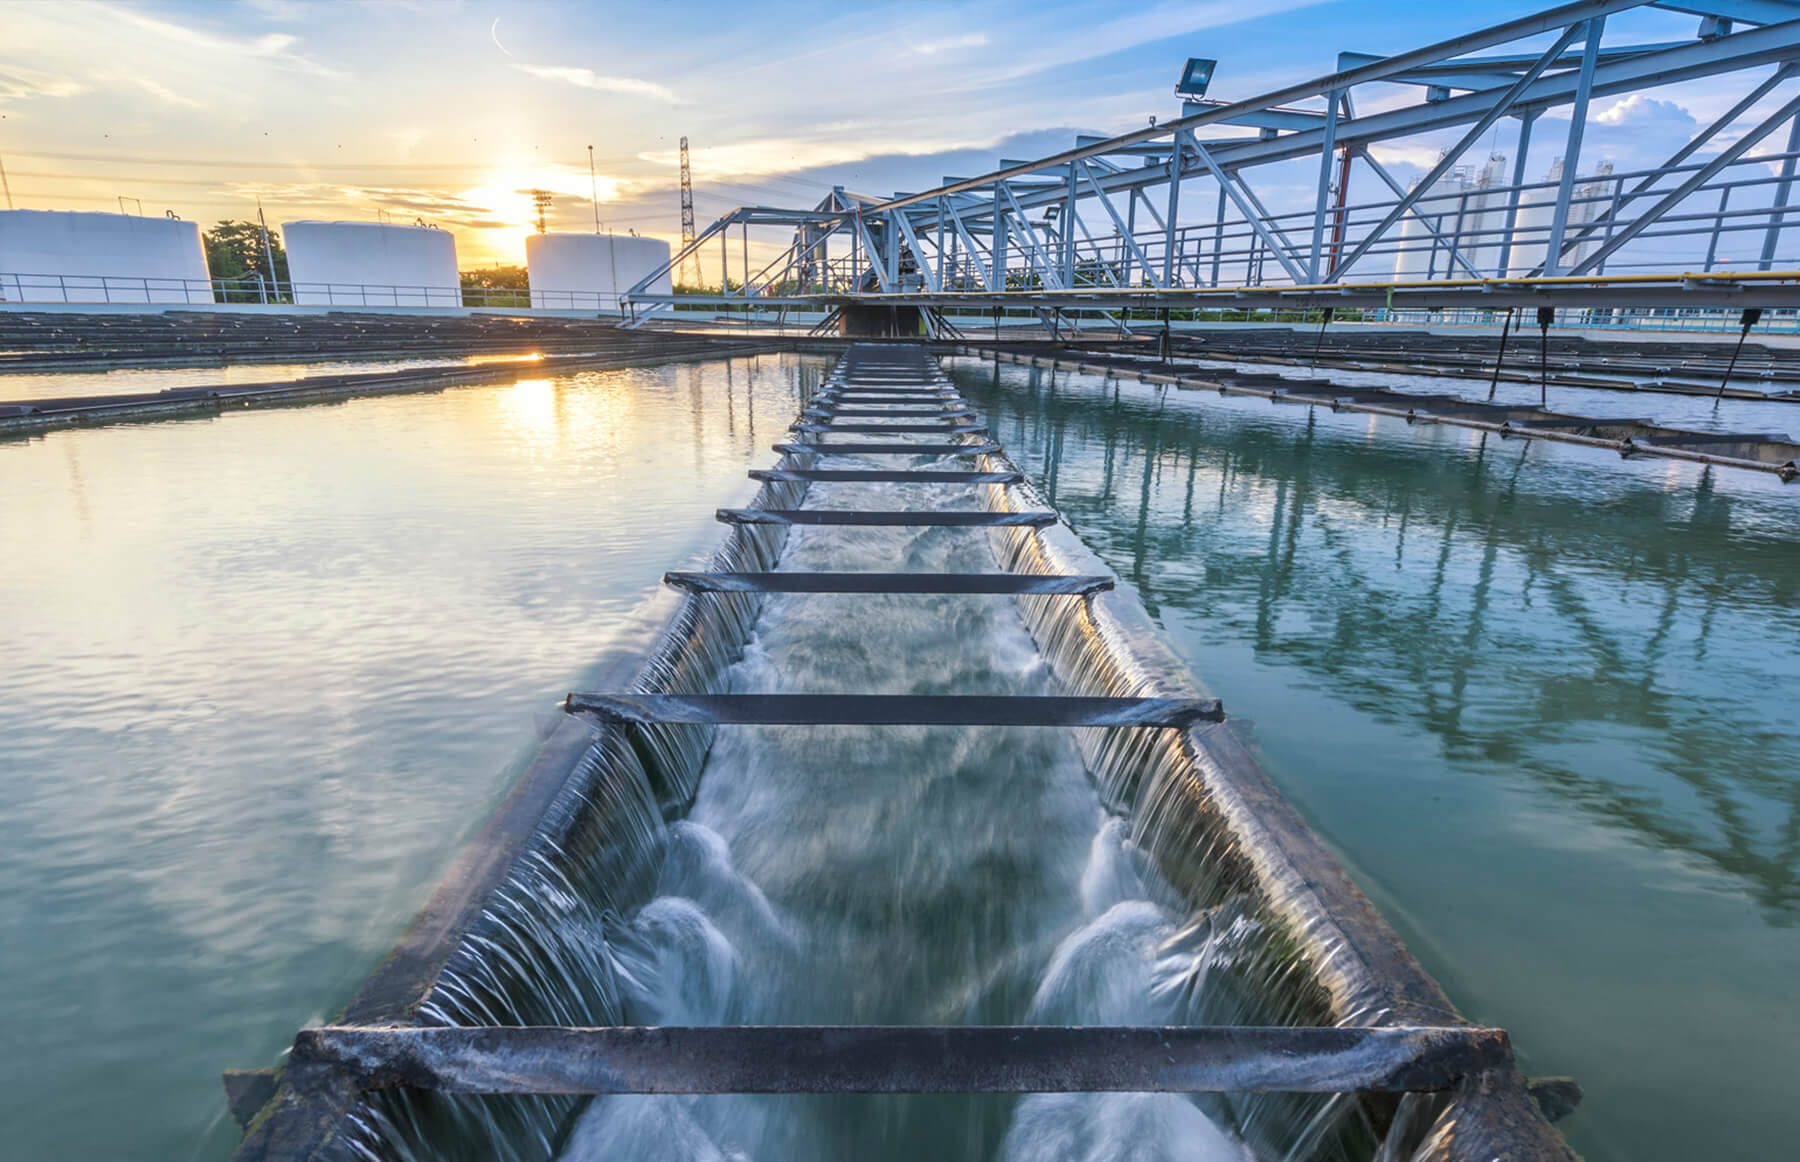 Wastewater treatmentis a process used to remove contaminants fromwastewaterorsewageand convert it into aneffluentthat can be returned to the water cycle, or for reclamation for various purposes.